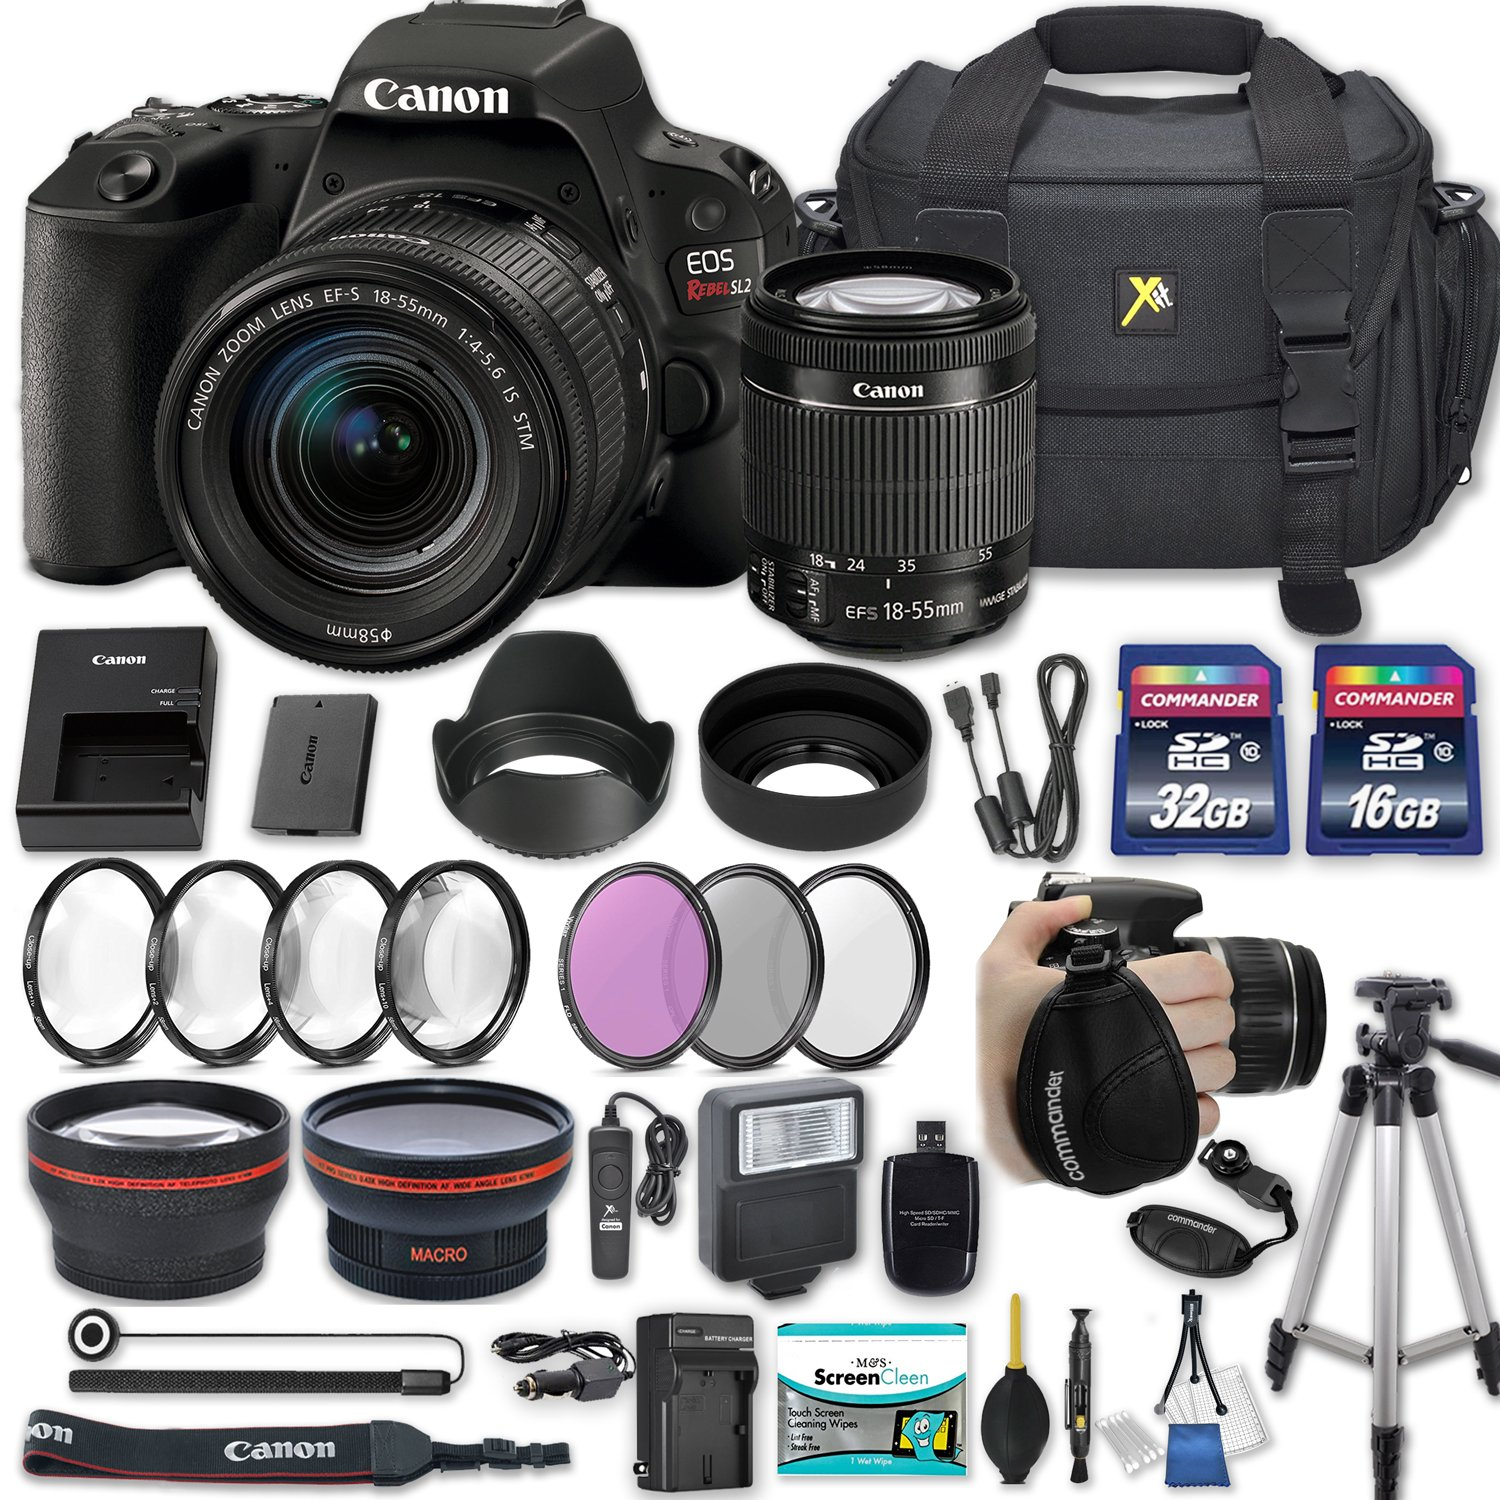 Canon EOS Rebel SL2 DSLR Camera with EF-S 18-55mm f/4-5.6 IS STM Lens + 2 Memory Cards + 2 Auxiliary Lenses + HD Filters + 50'' Tripod + Premium Accessories Bundle (24 Items) by Canon